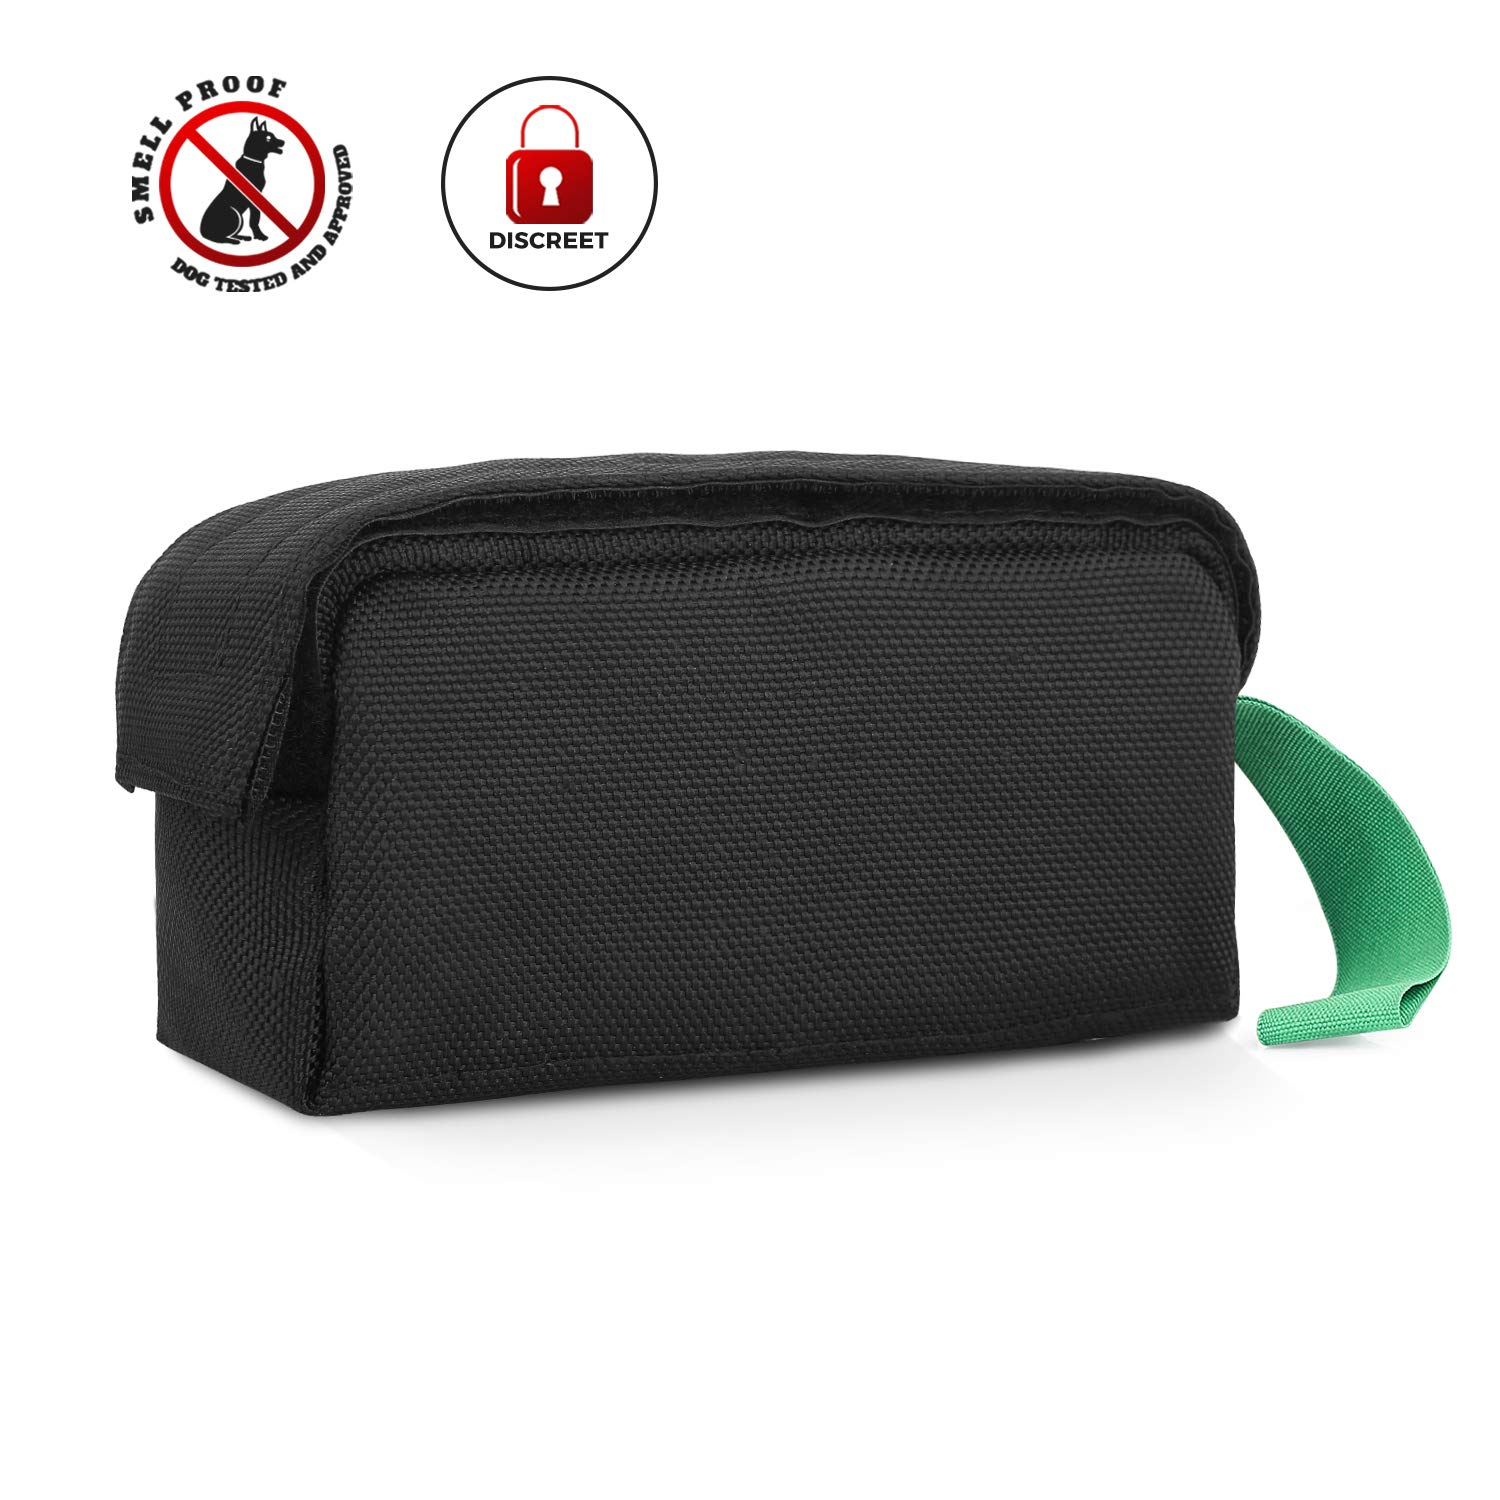 MEIZHI Smell Proof Bag Pouch Black Plant Germination Bag 7X3.5X3 for Herbs Spices Tea Anything with Strong Odor Activated Carbon Lining Odor Absorbing Water Resistant Black by MEIZHI (Image #1)